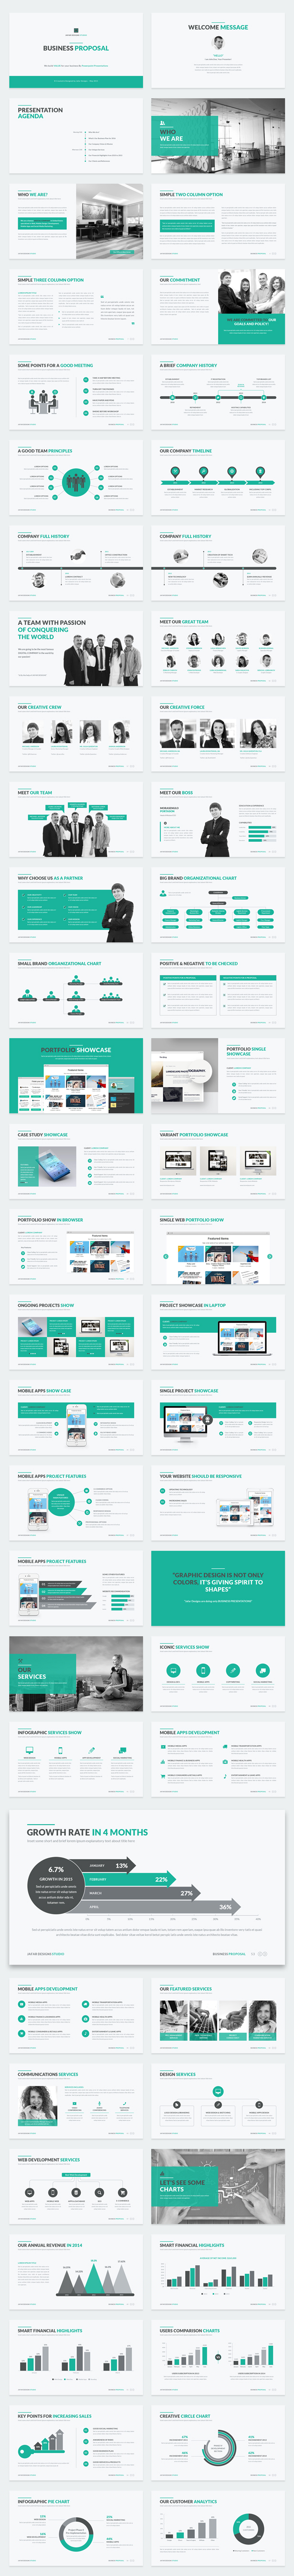 Business Proposal Powerpoint Template By Jafardesigns Graphicriver